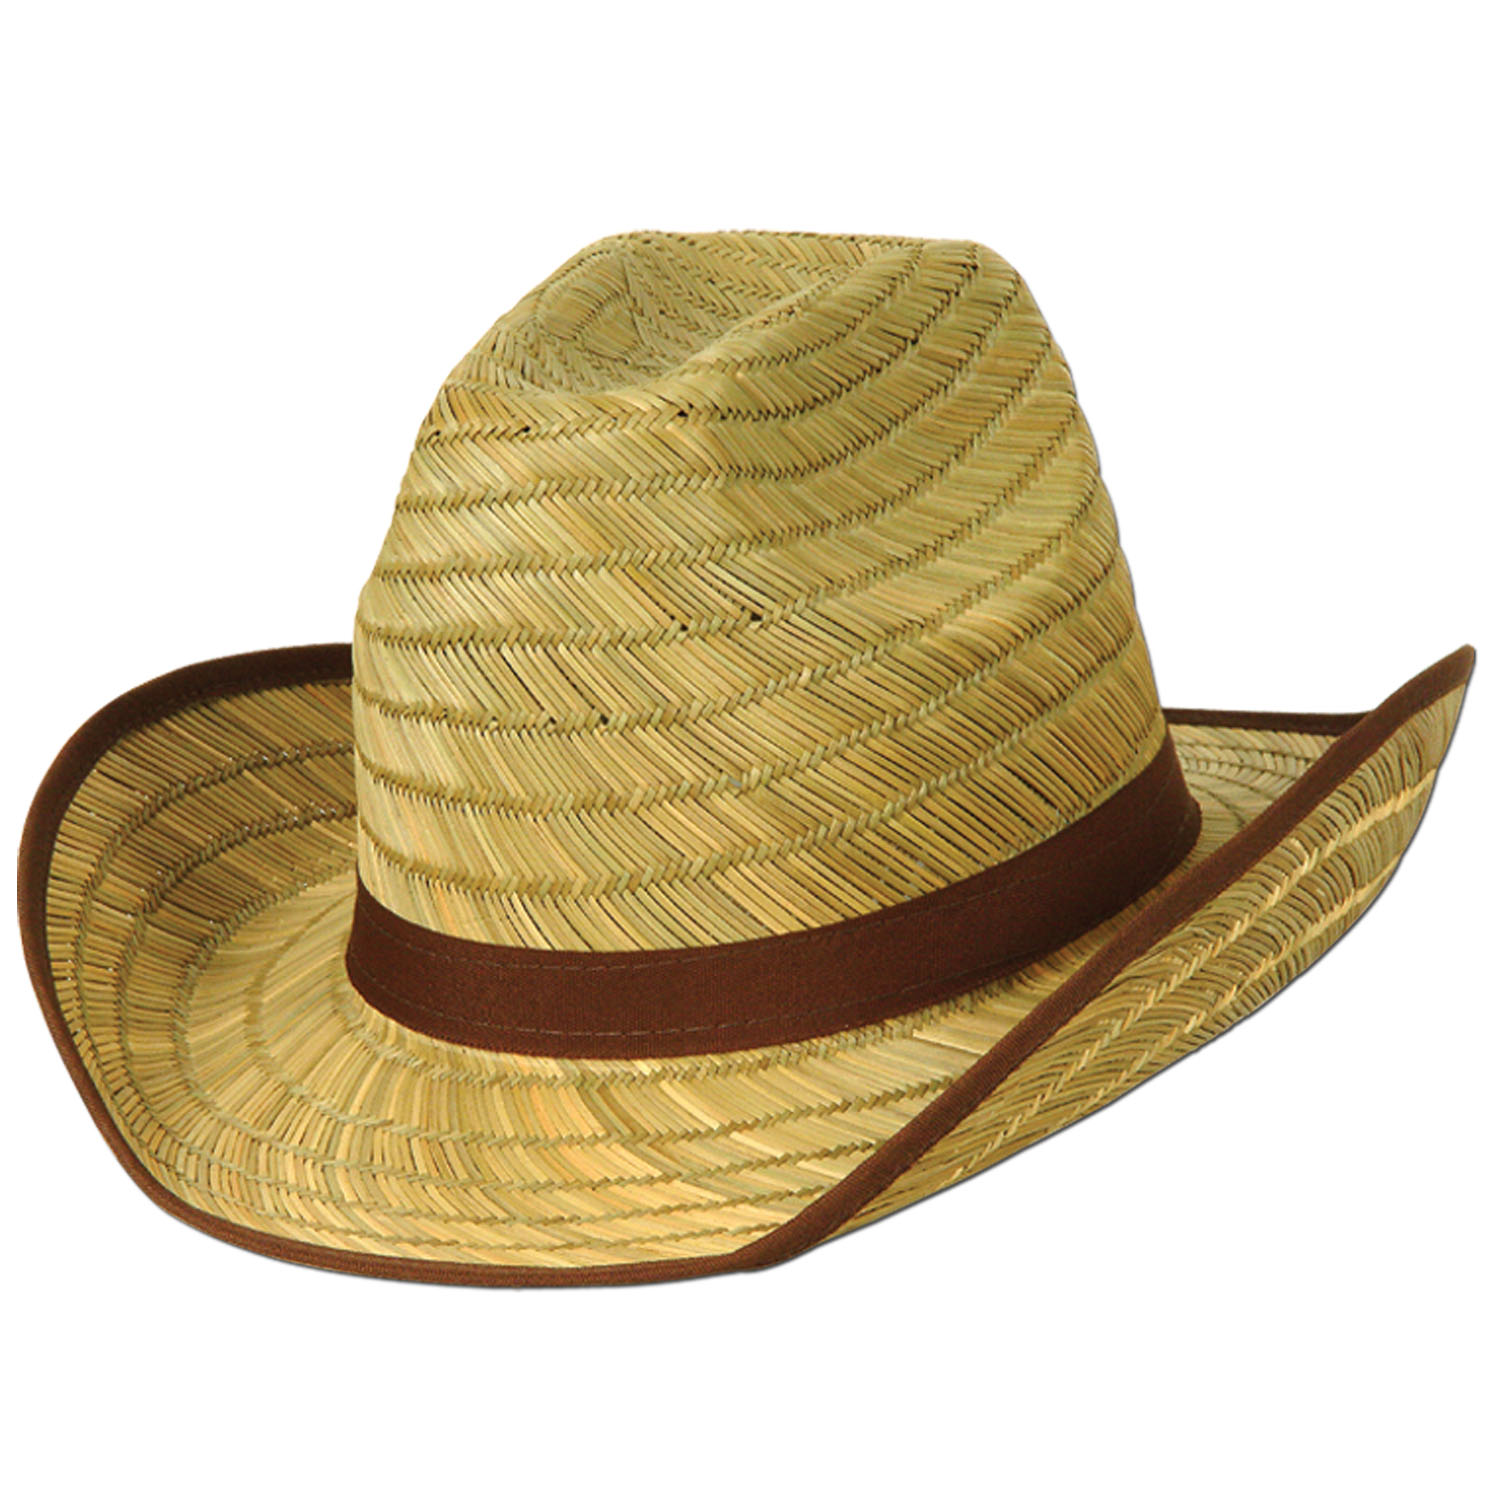 Adult cowboy straw hat with brown embelishments.